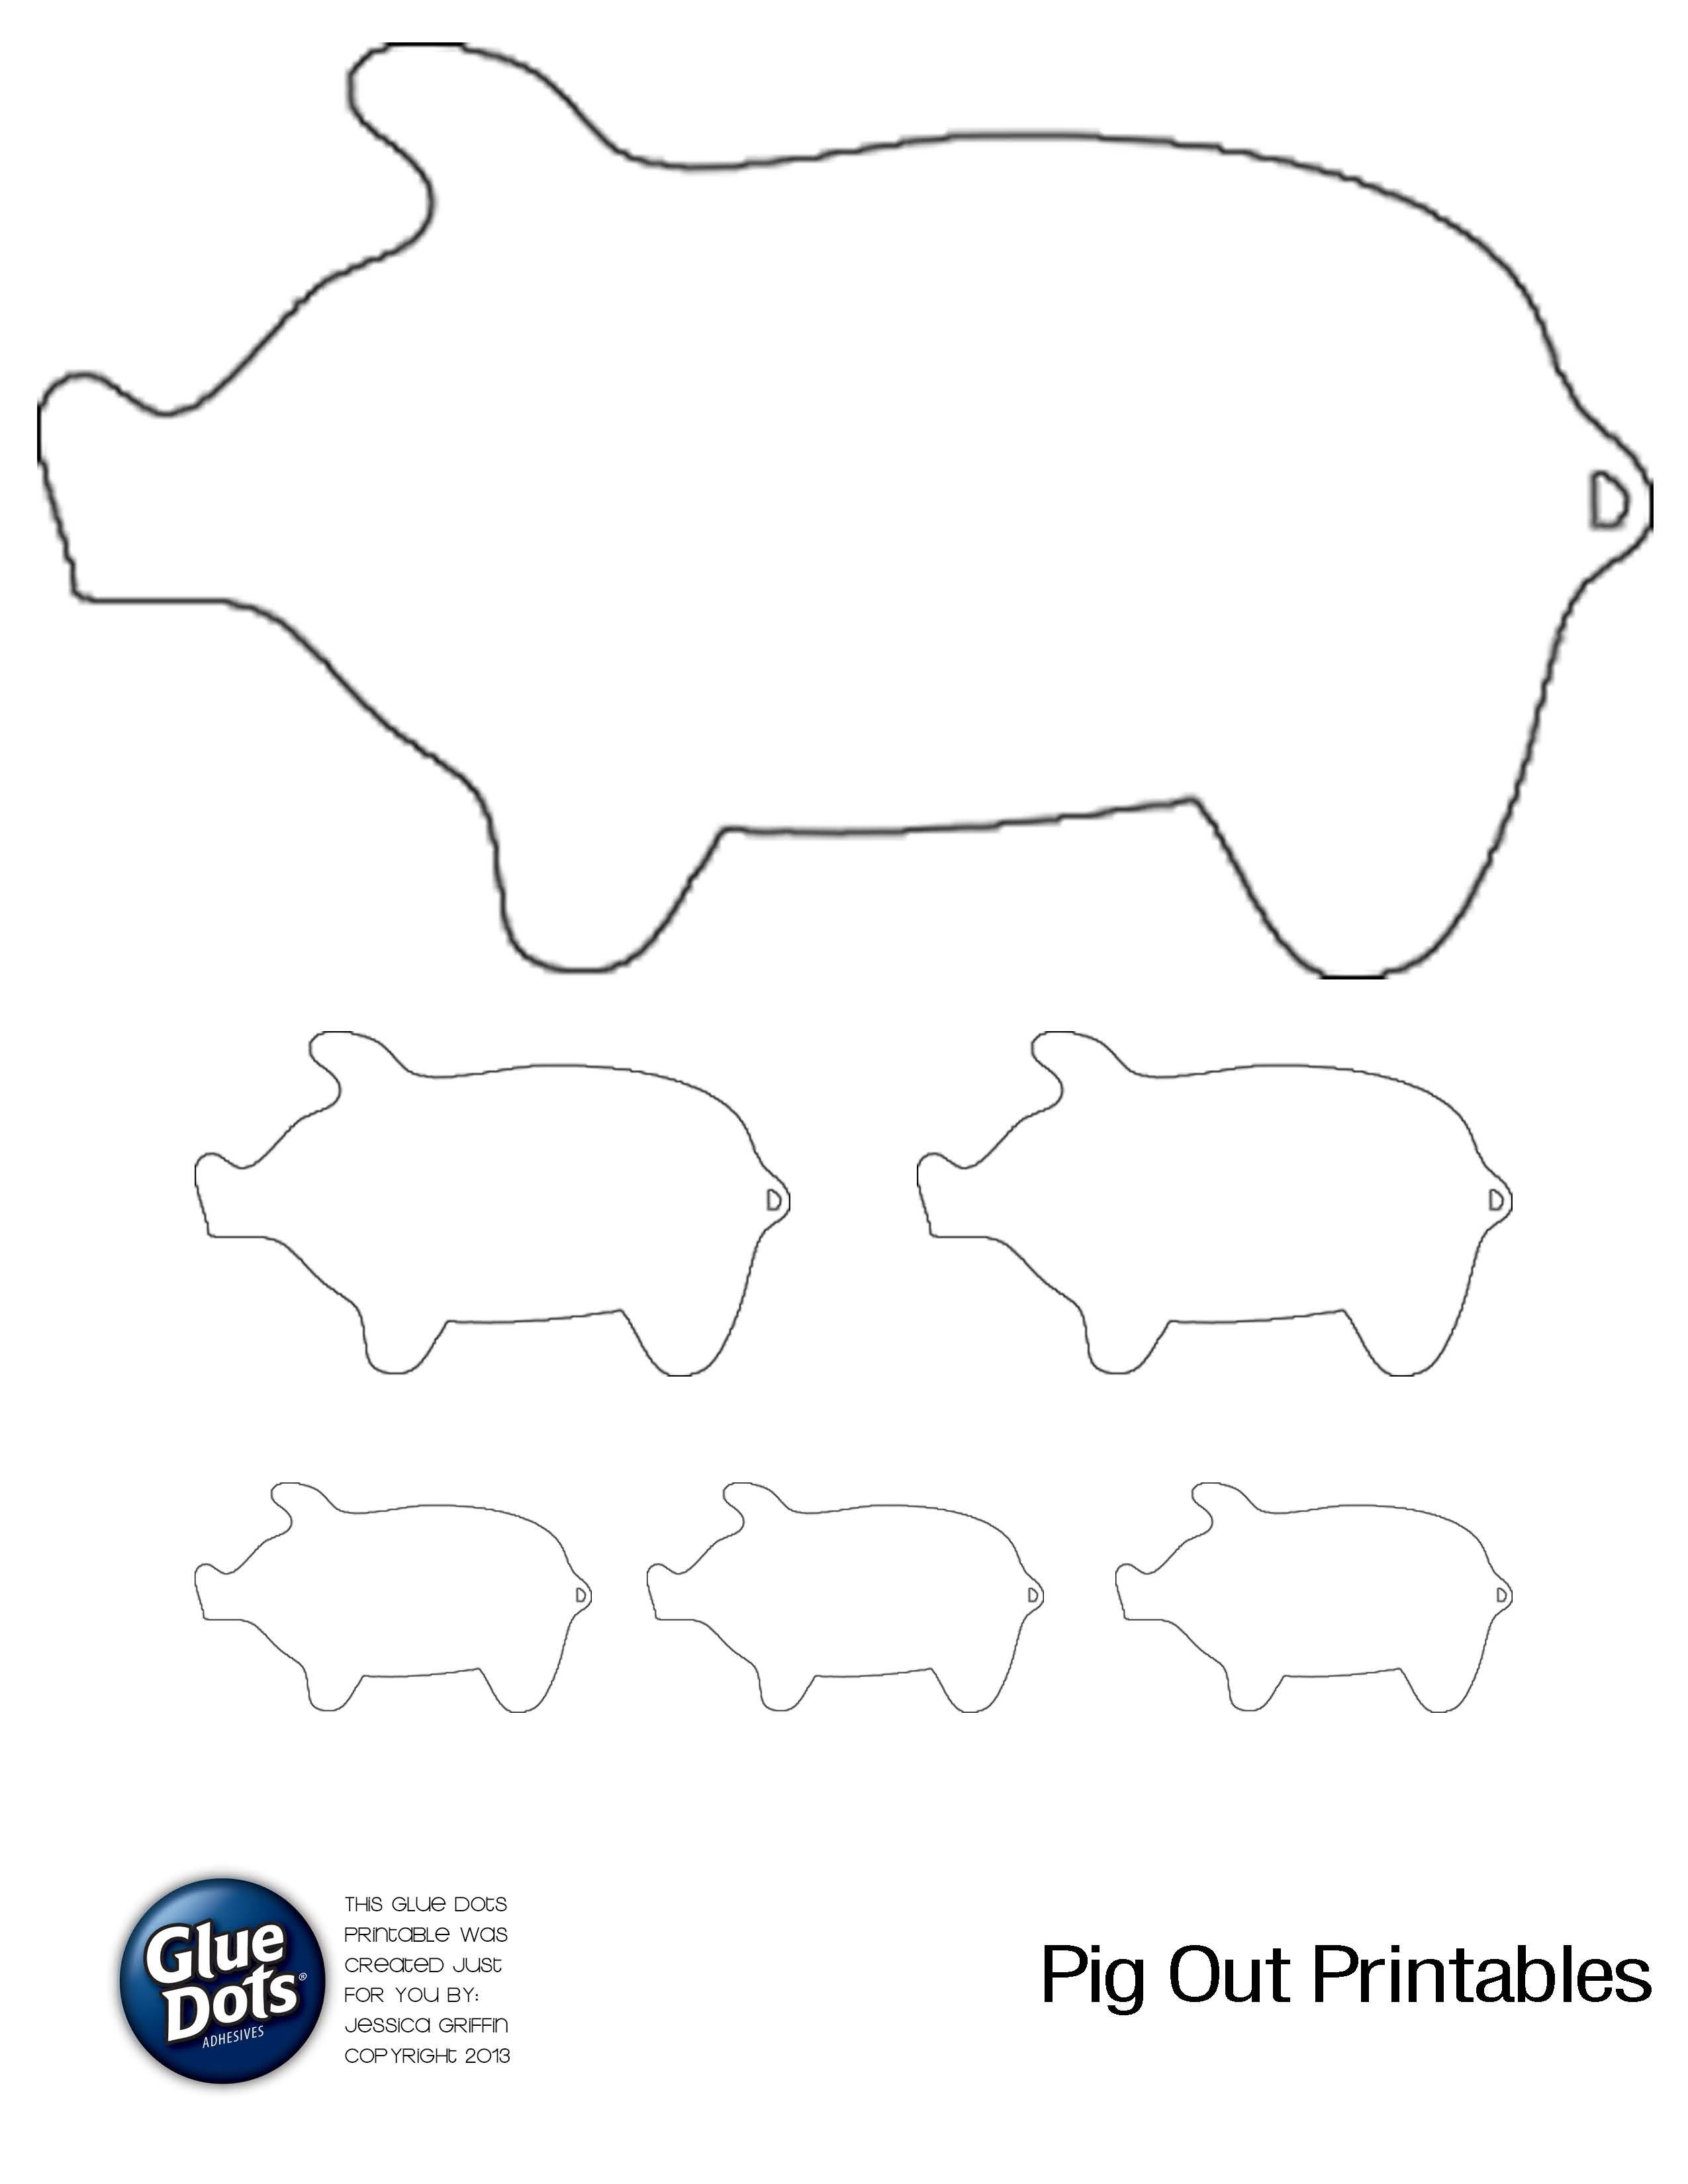 free pig shape printables for gluedots pig out summer bbq guide